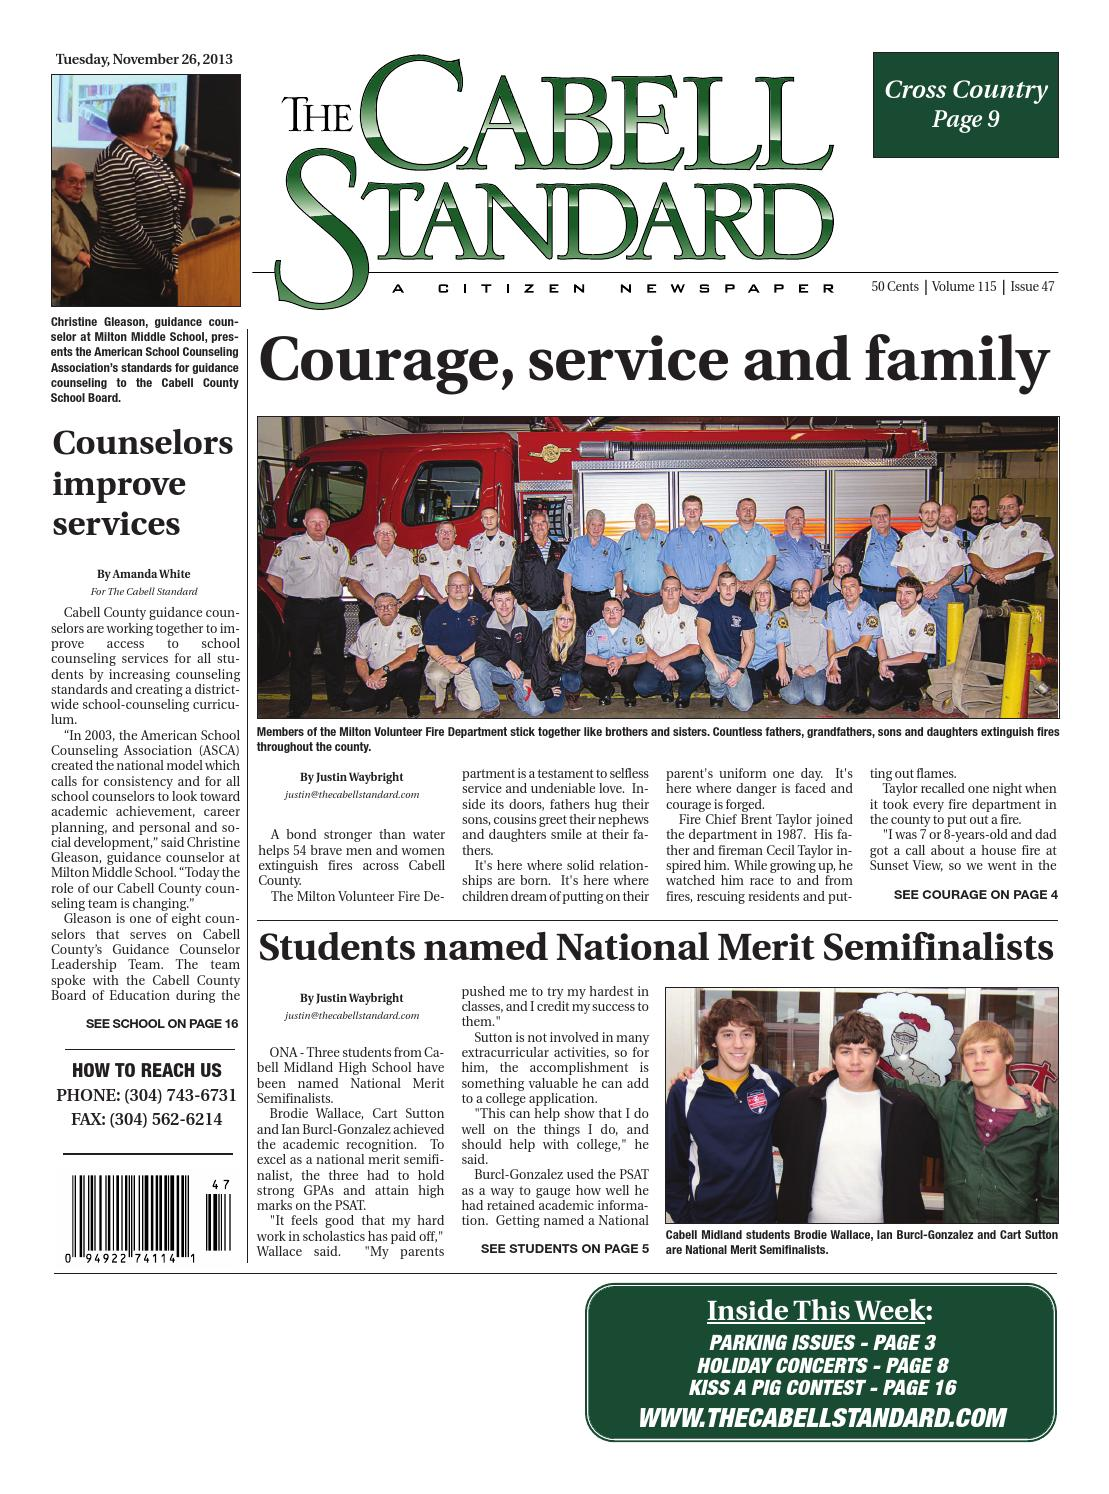 The Cabell Standard, November 26, 2013 by PC Newspapers - issuu